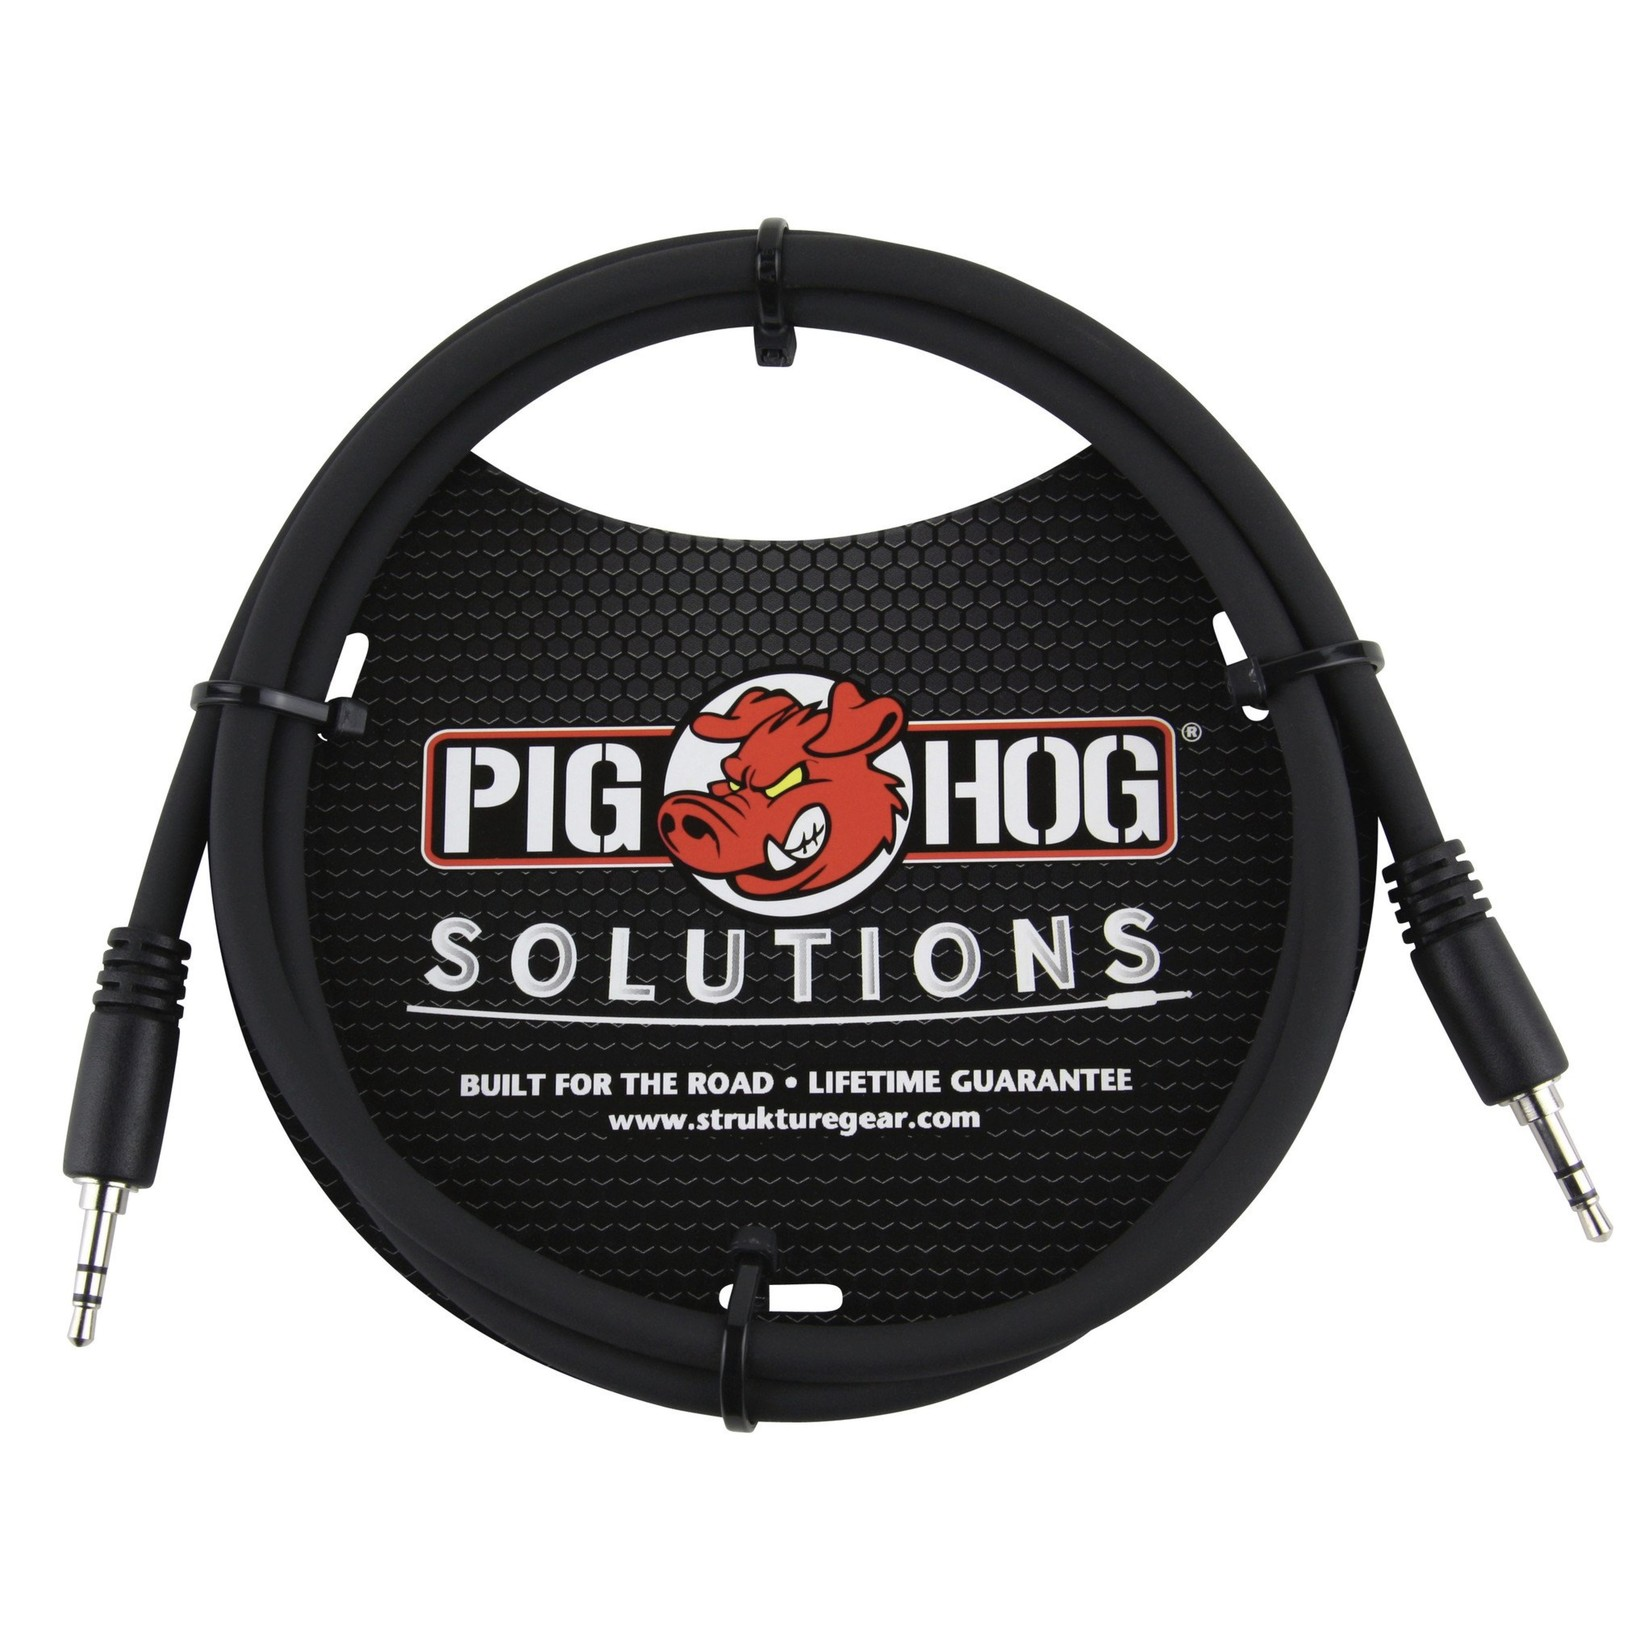 Pig Hog Pig Hog Solutions 3.5mm TRS to 3.5mm TRS, 6-foot cable, PX-T3506